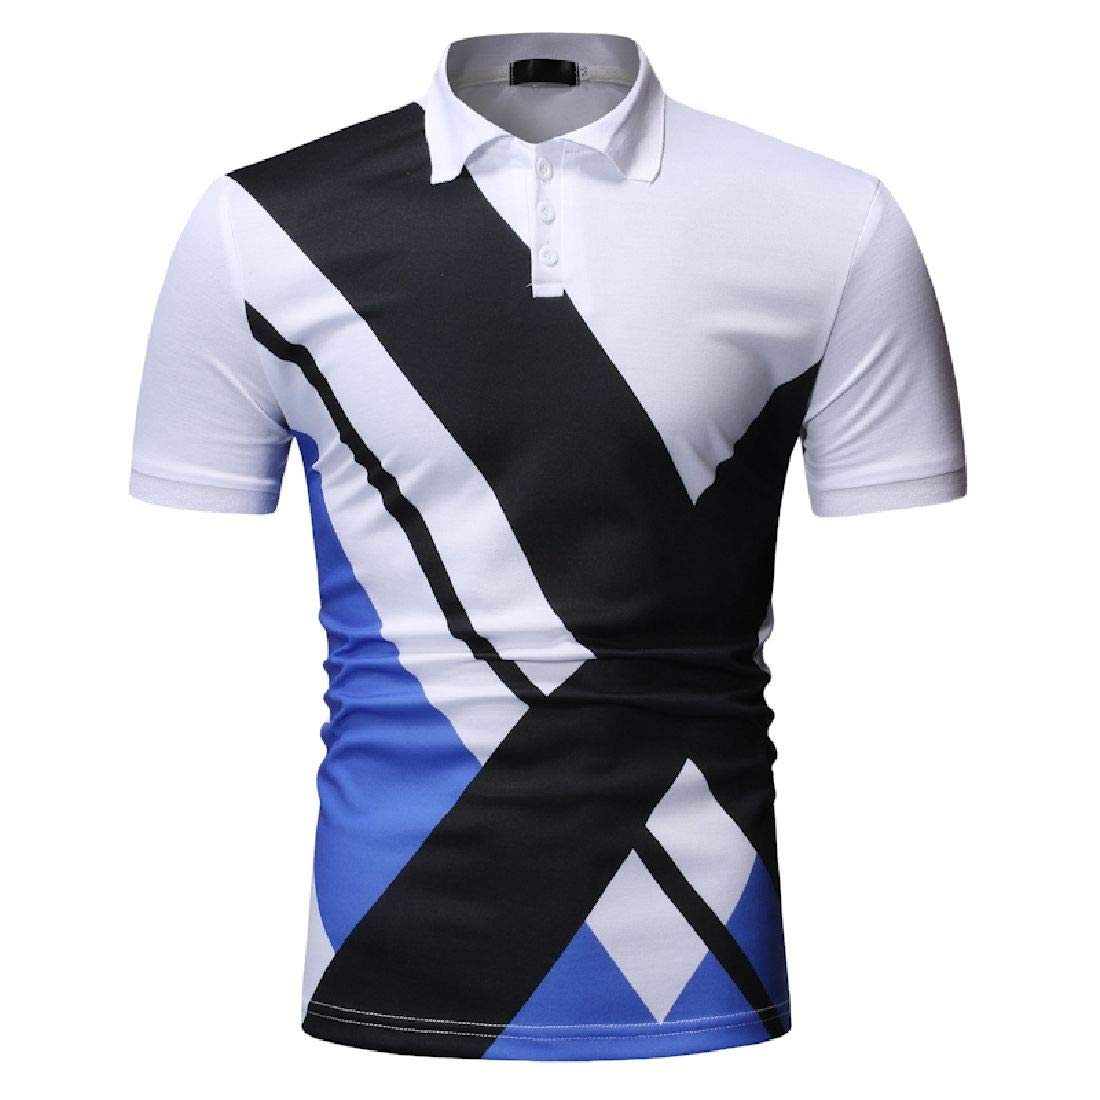 Domple Mens Contrast Summer Leisure Business Short Sleeve Fashion Polo Shirt